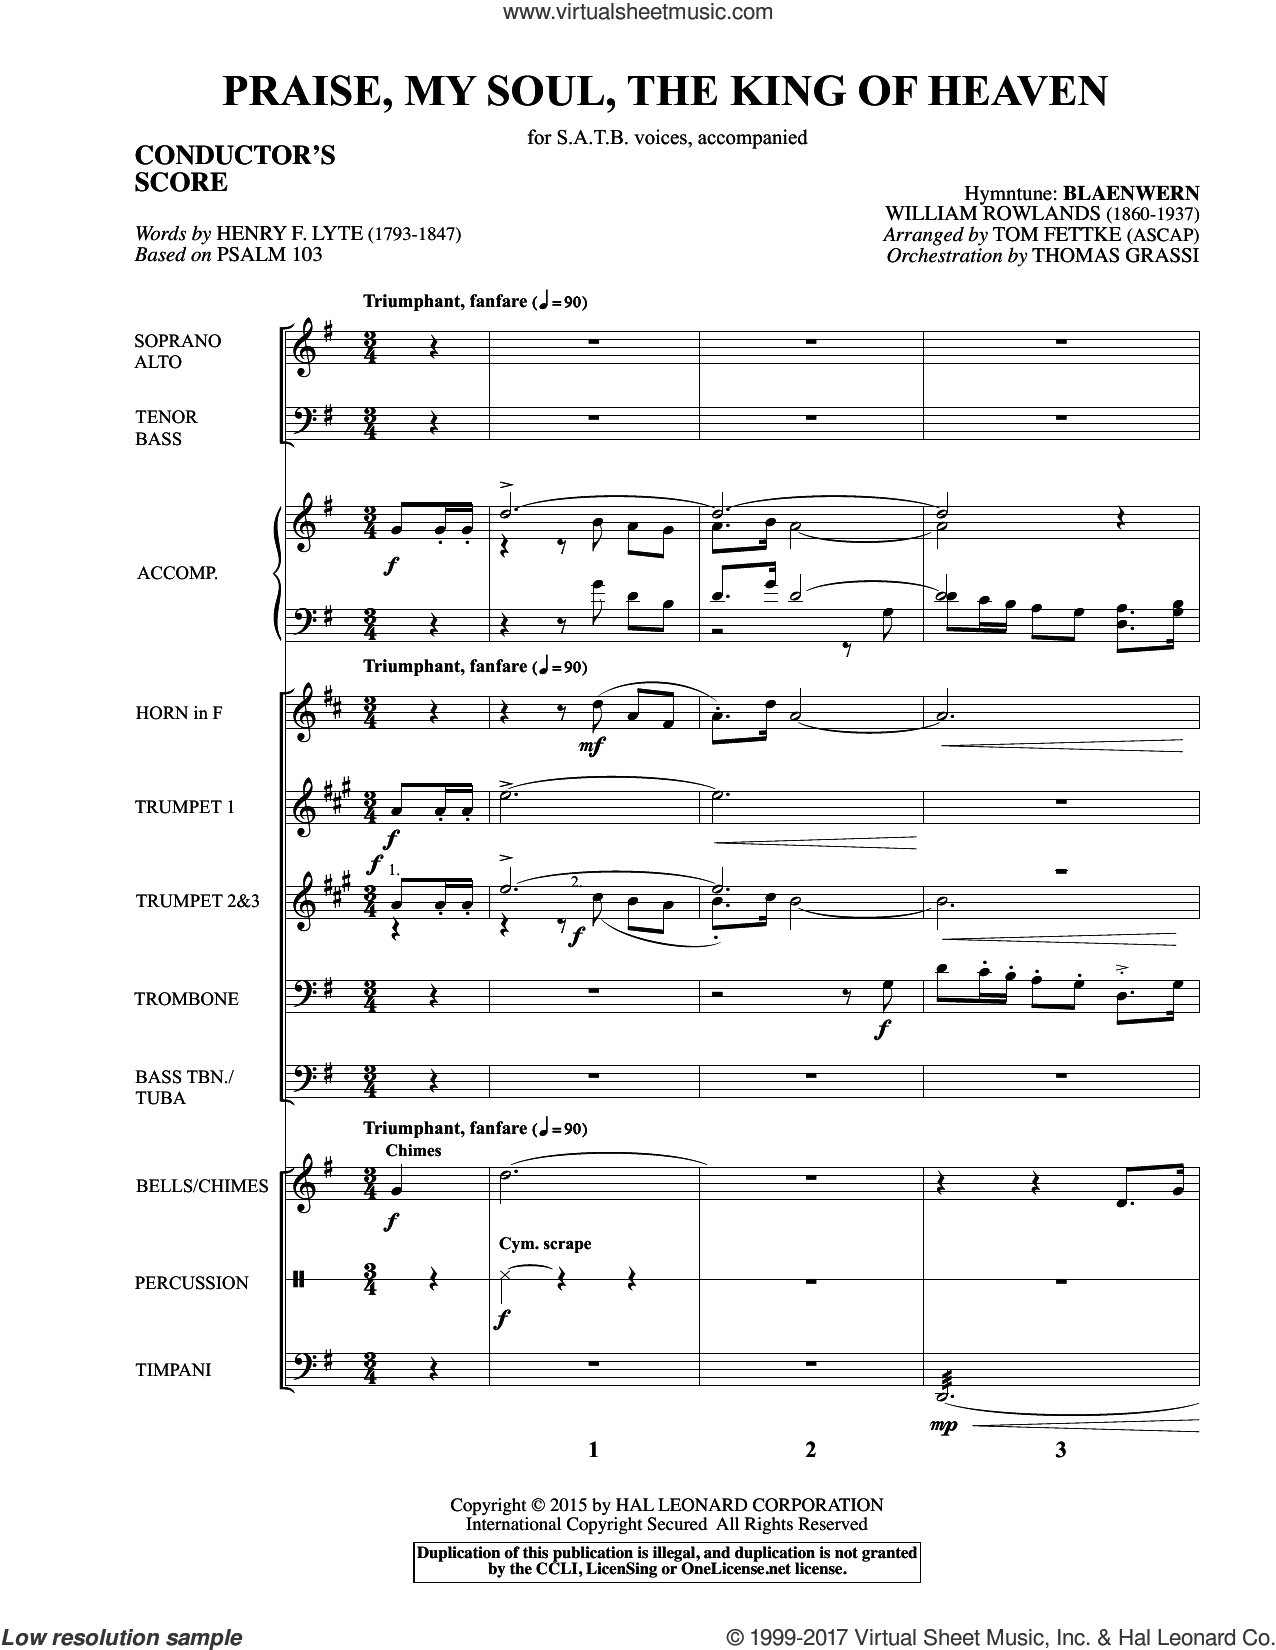 Praise, My Soul, The King of Heaven (COMPLETE) sheet music for orchestra/band by Tom Fettke, Henry F. Lyte and William Rowlands, intermediate skill level